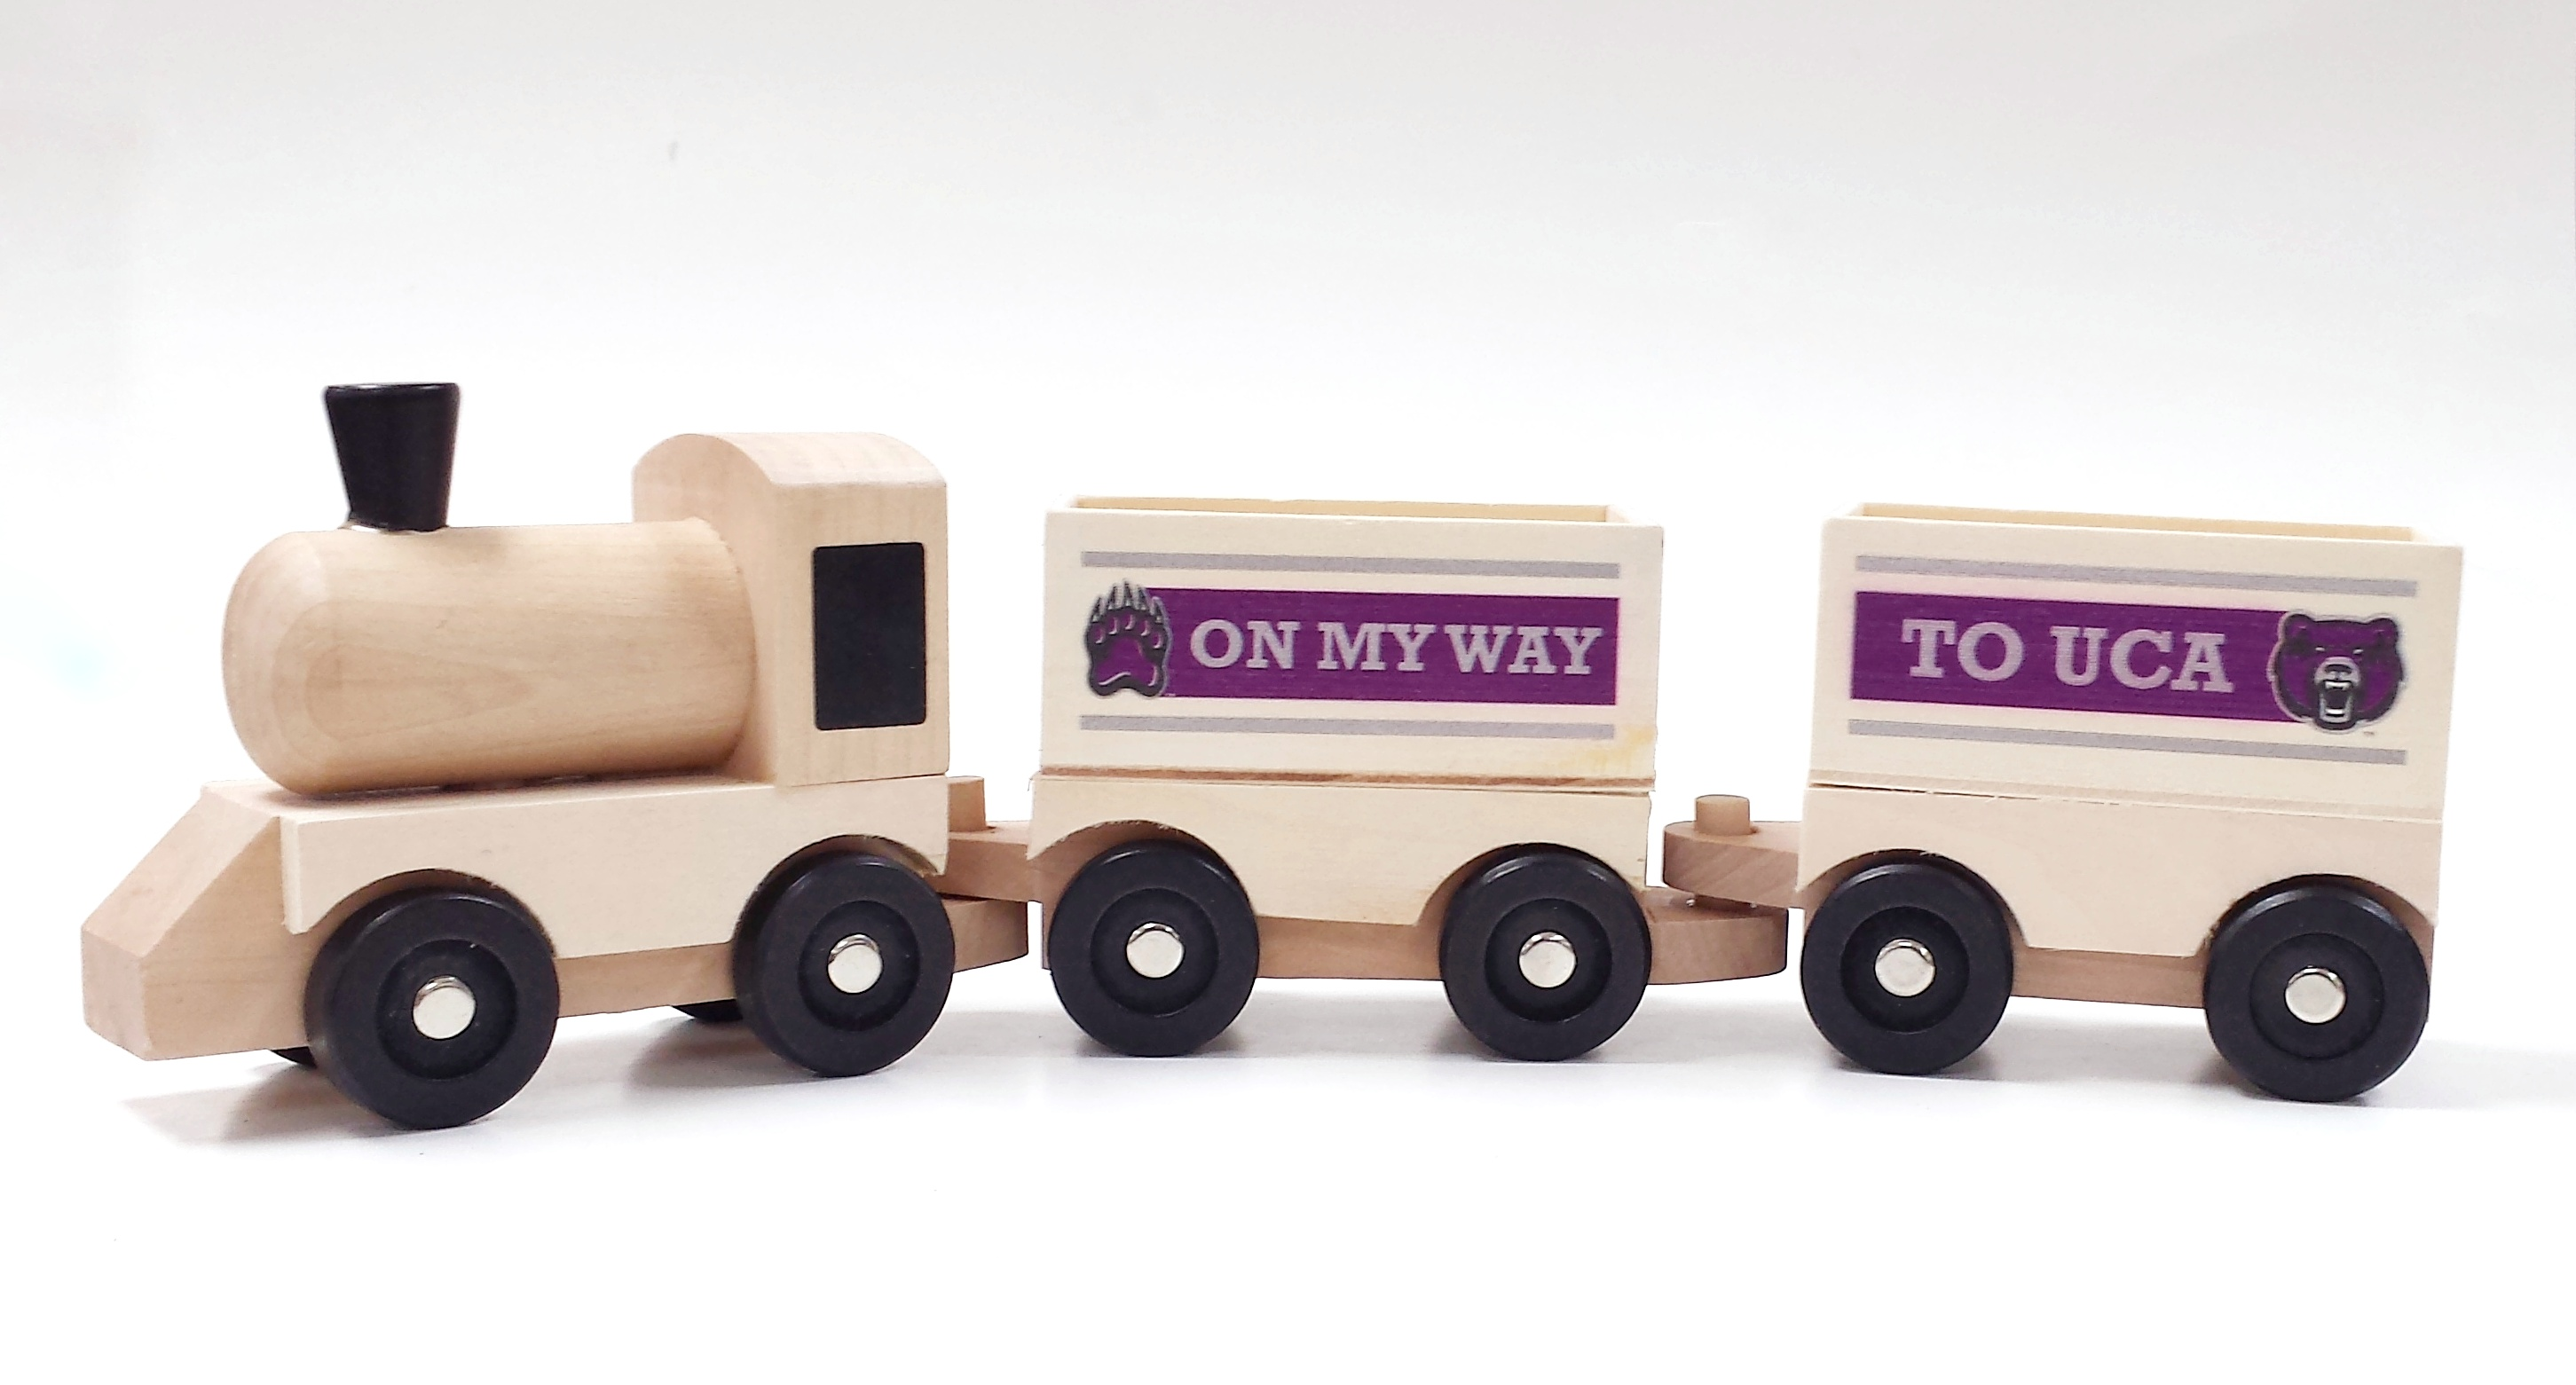 UCA Wooden Train